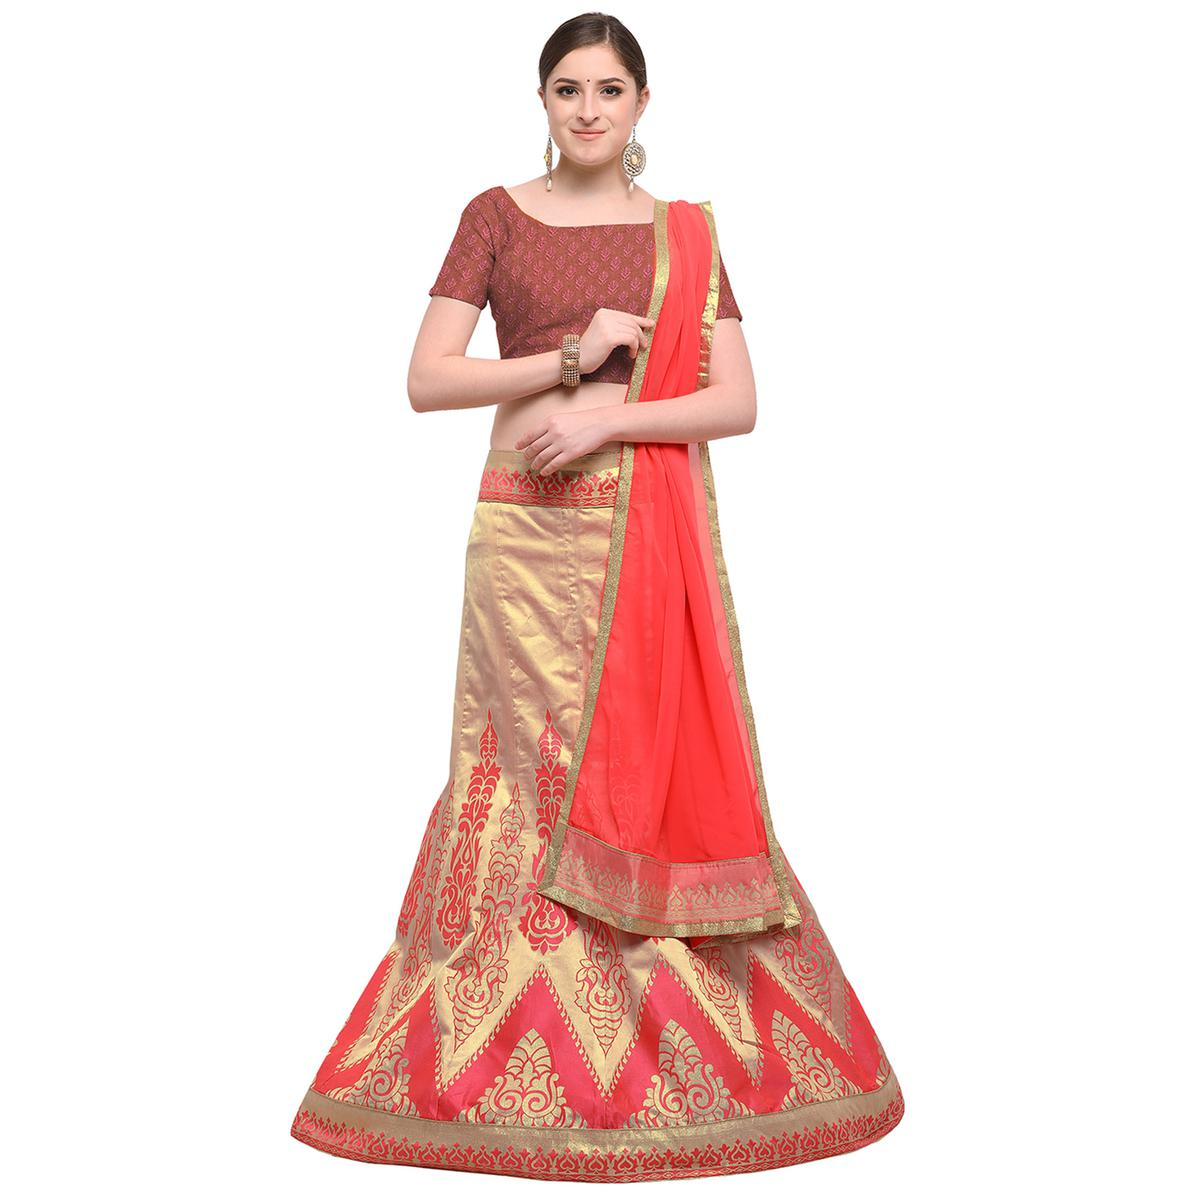 d301027ac9 Buy Pink Colored Banarasi Work Jacquard Silk Lehenga Choli Online India,  Best Prices, Reviews - Peachmode